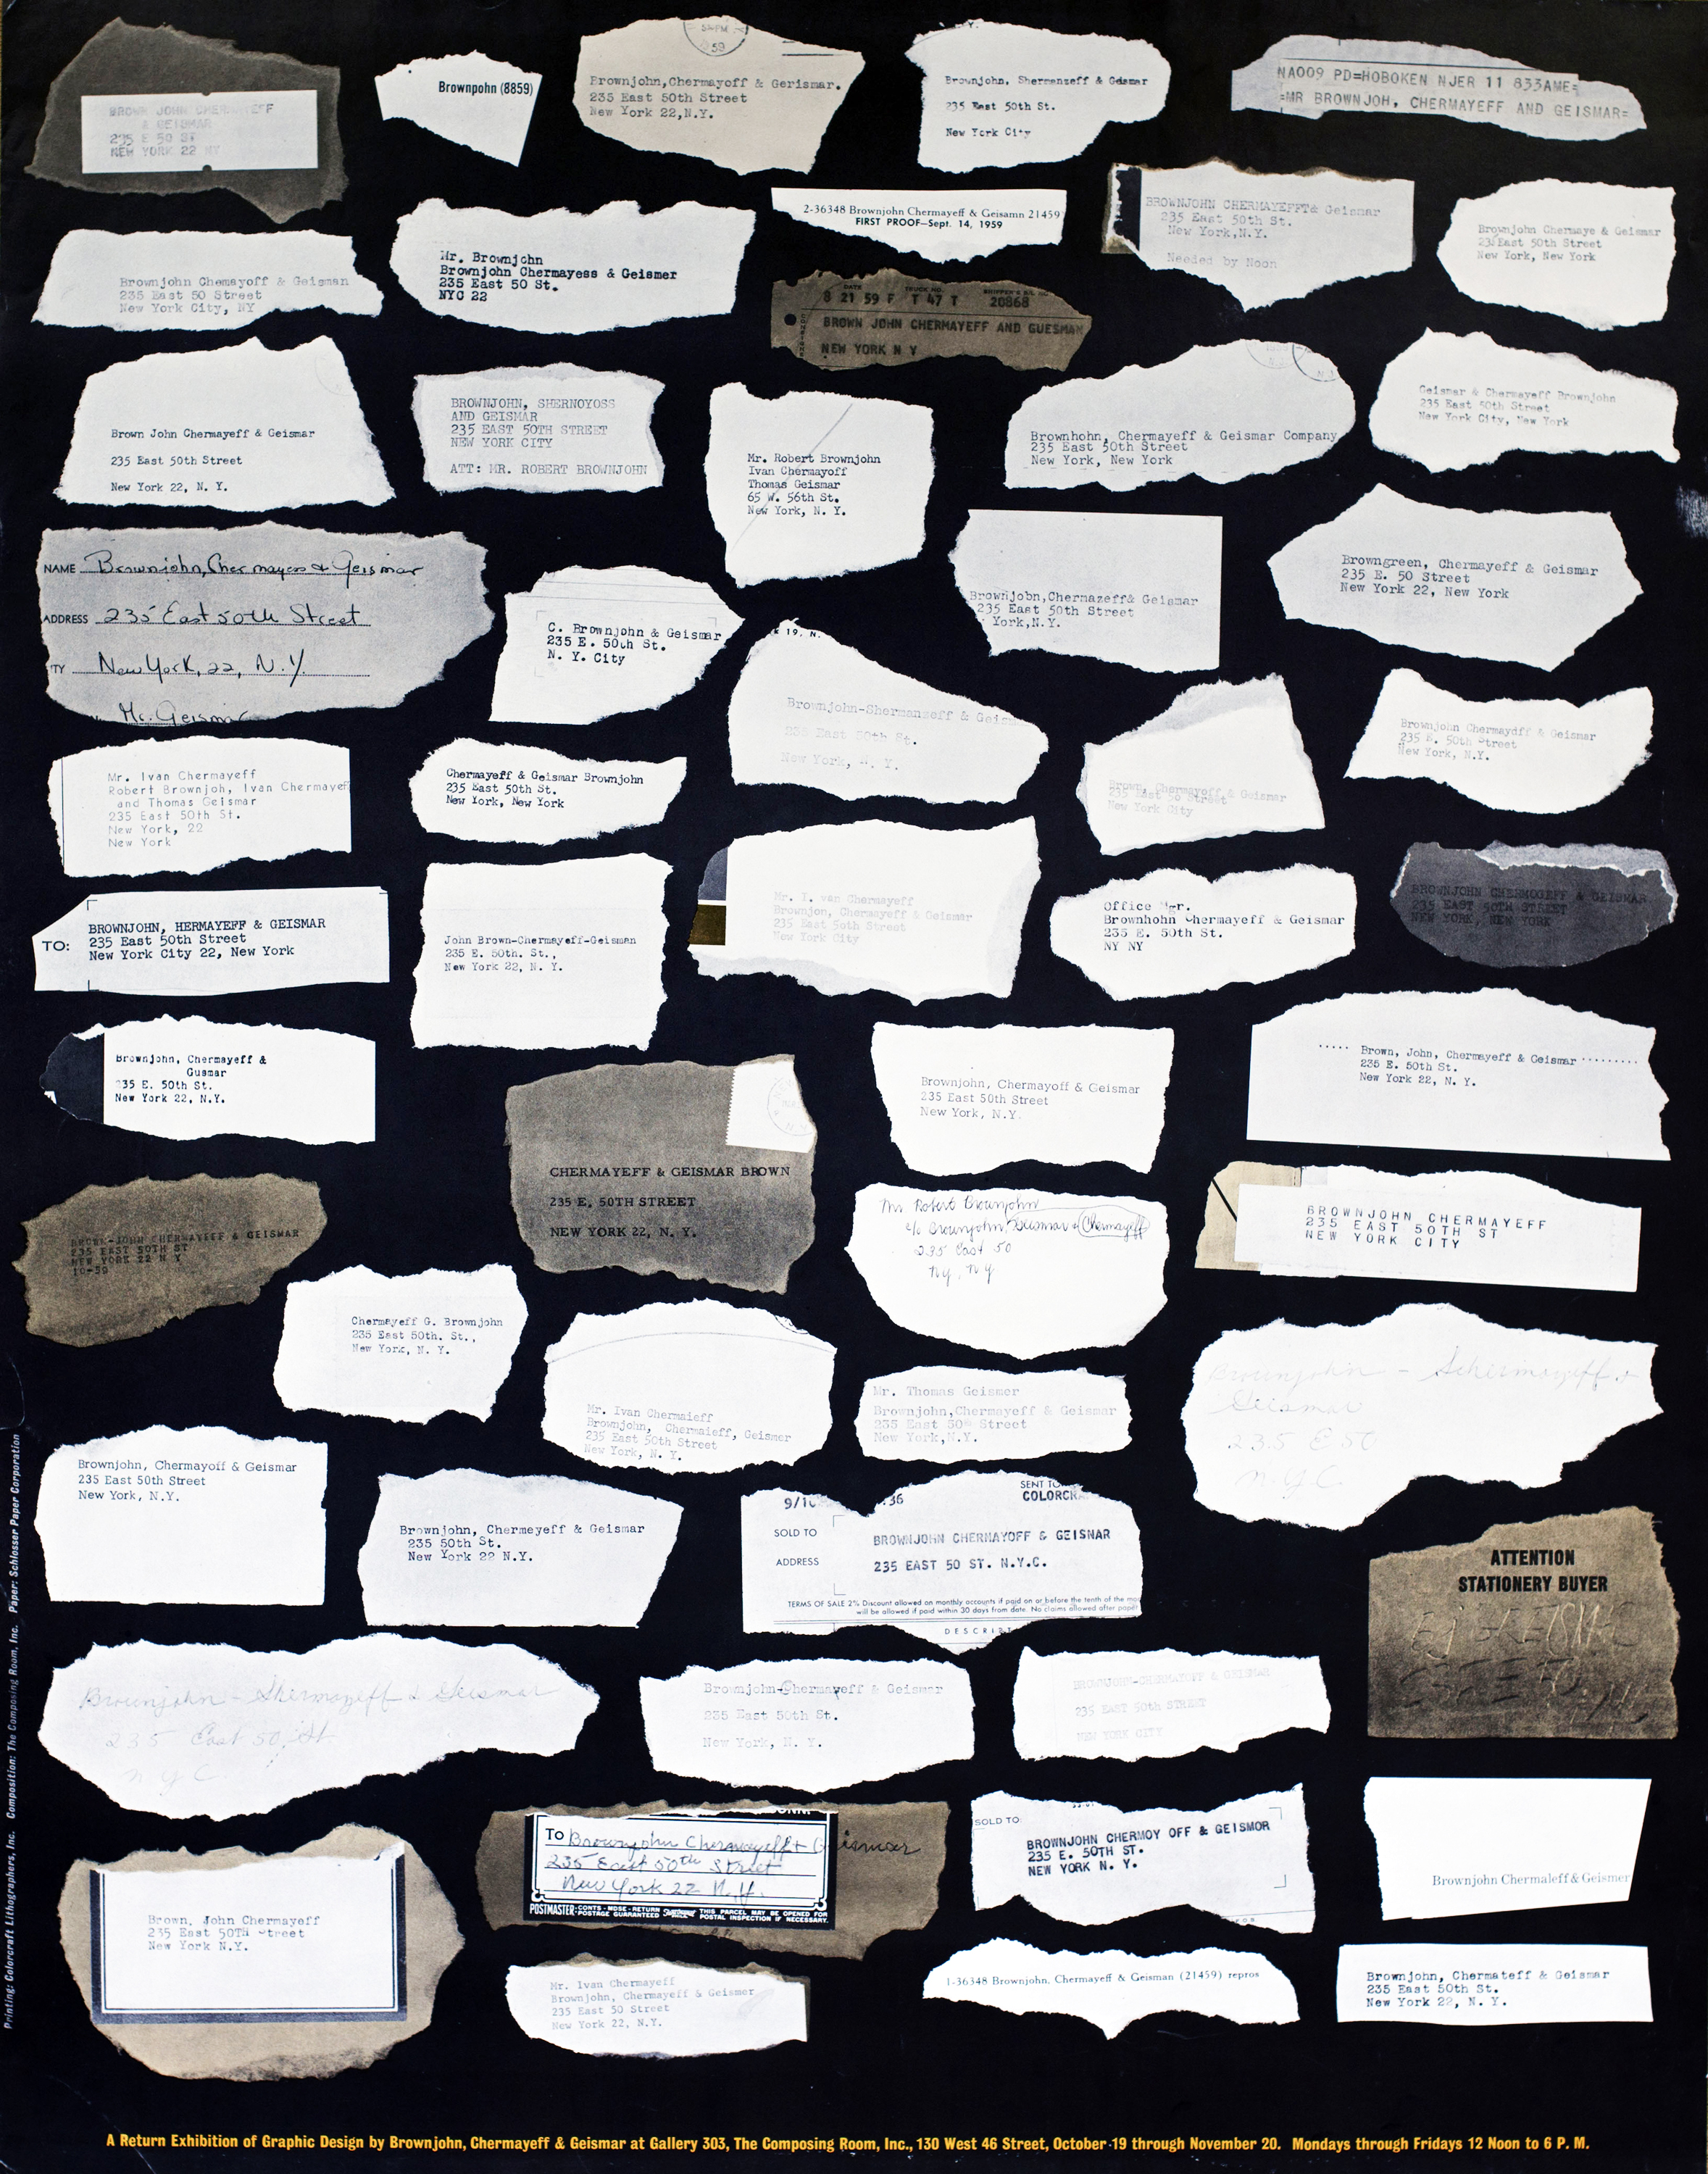 Photograph of a collection of torn paper containing Brownjohn, Chermayeff and Geismar's address.